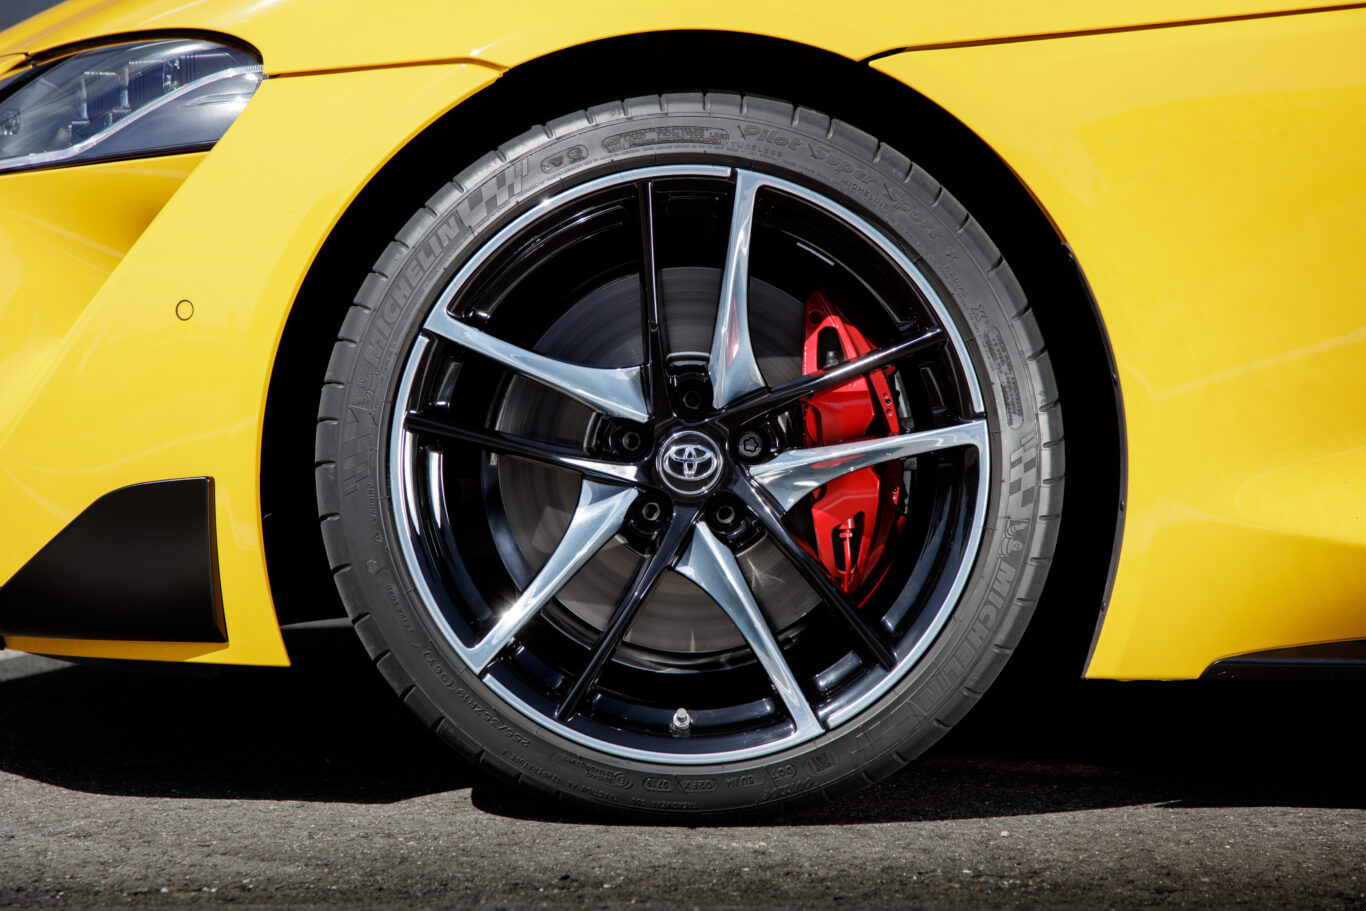 The Supra gets intricate alloy wheels